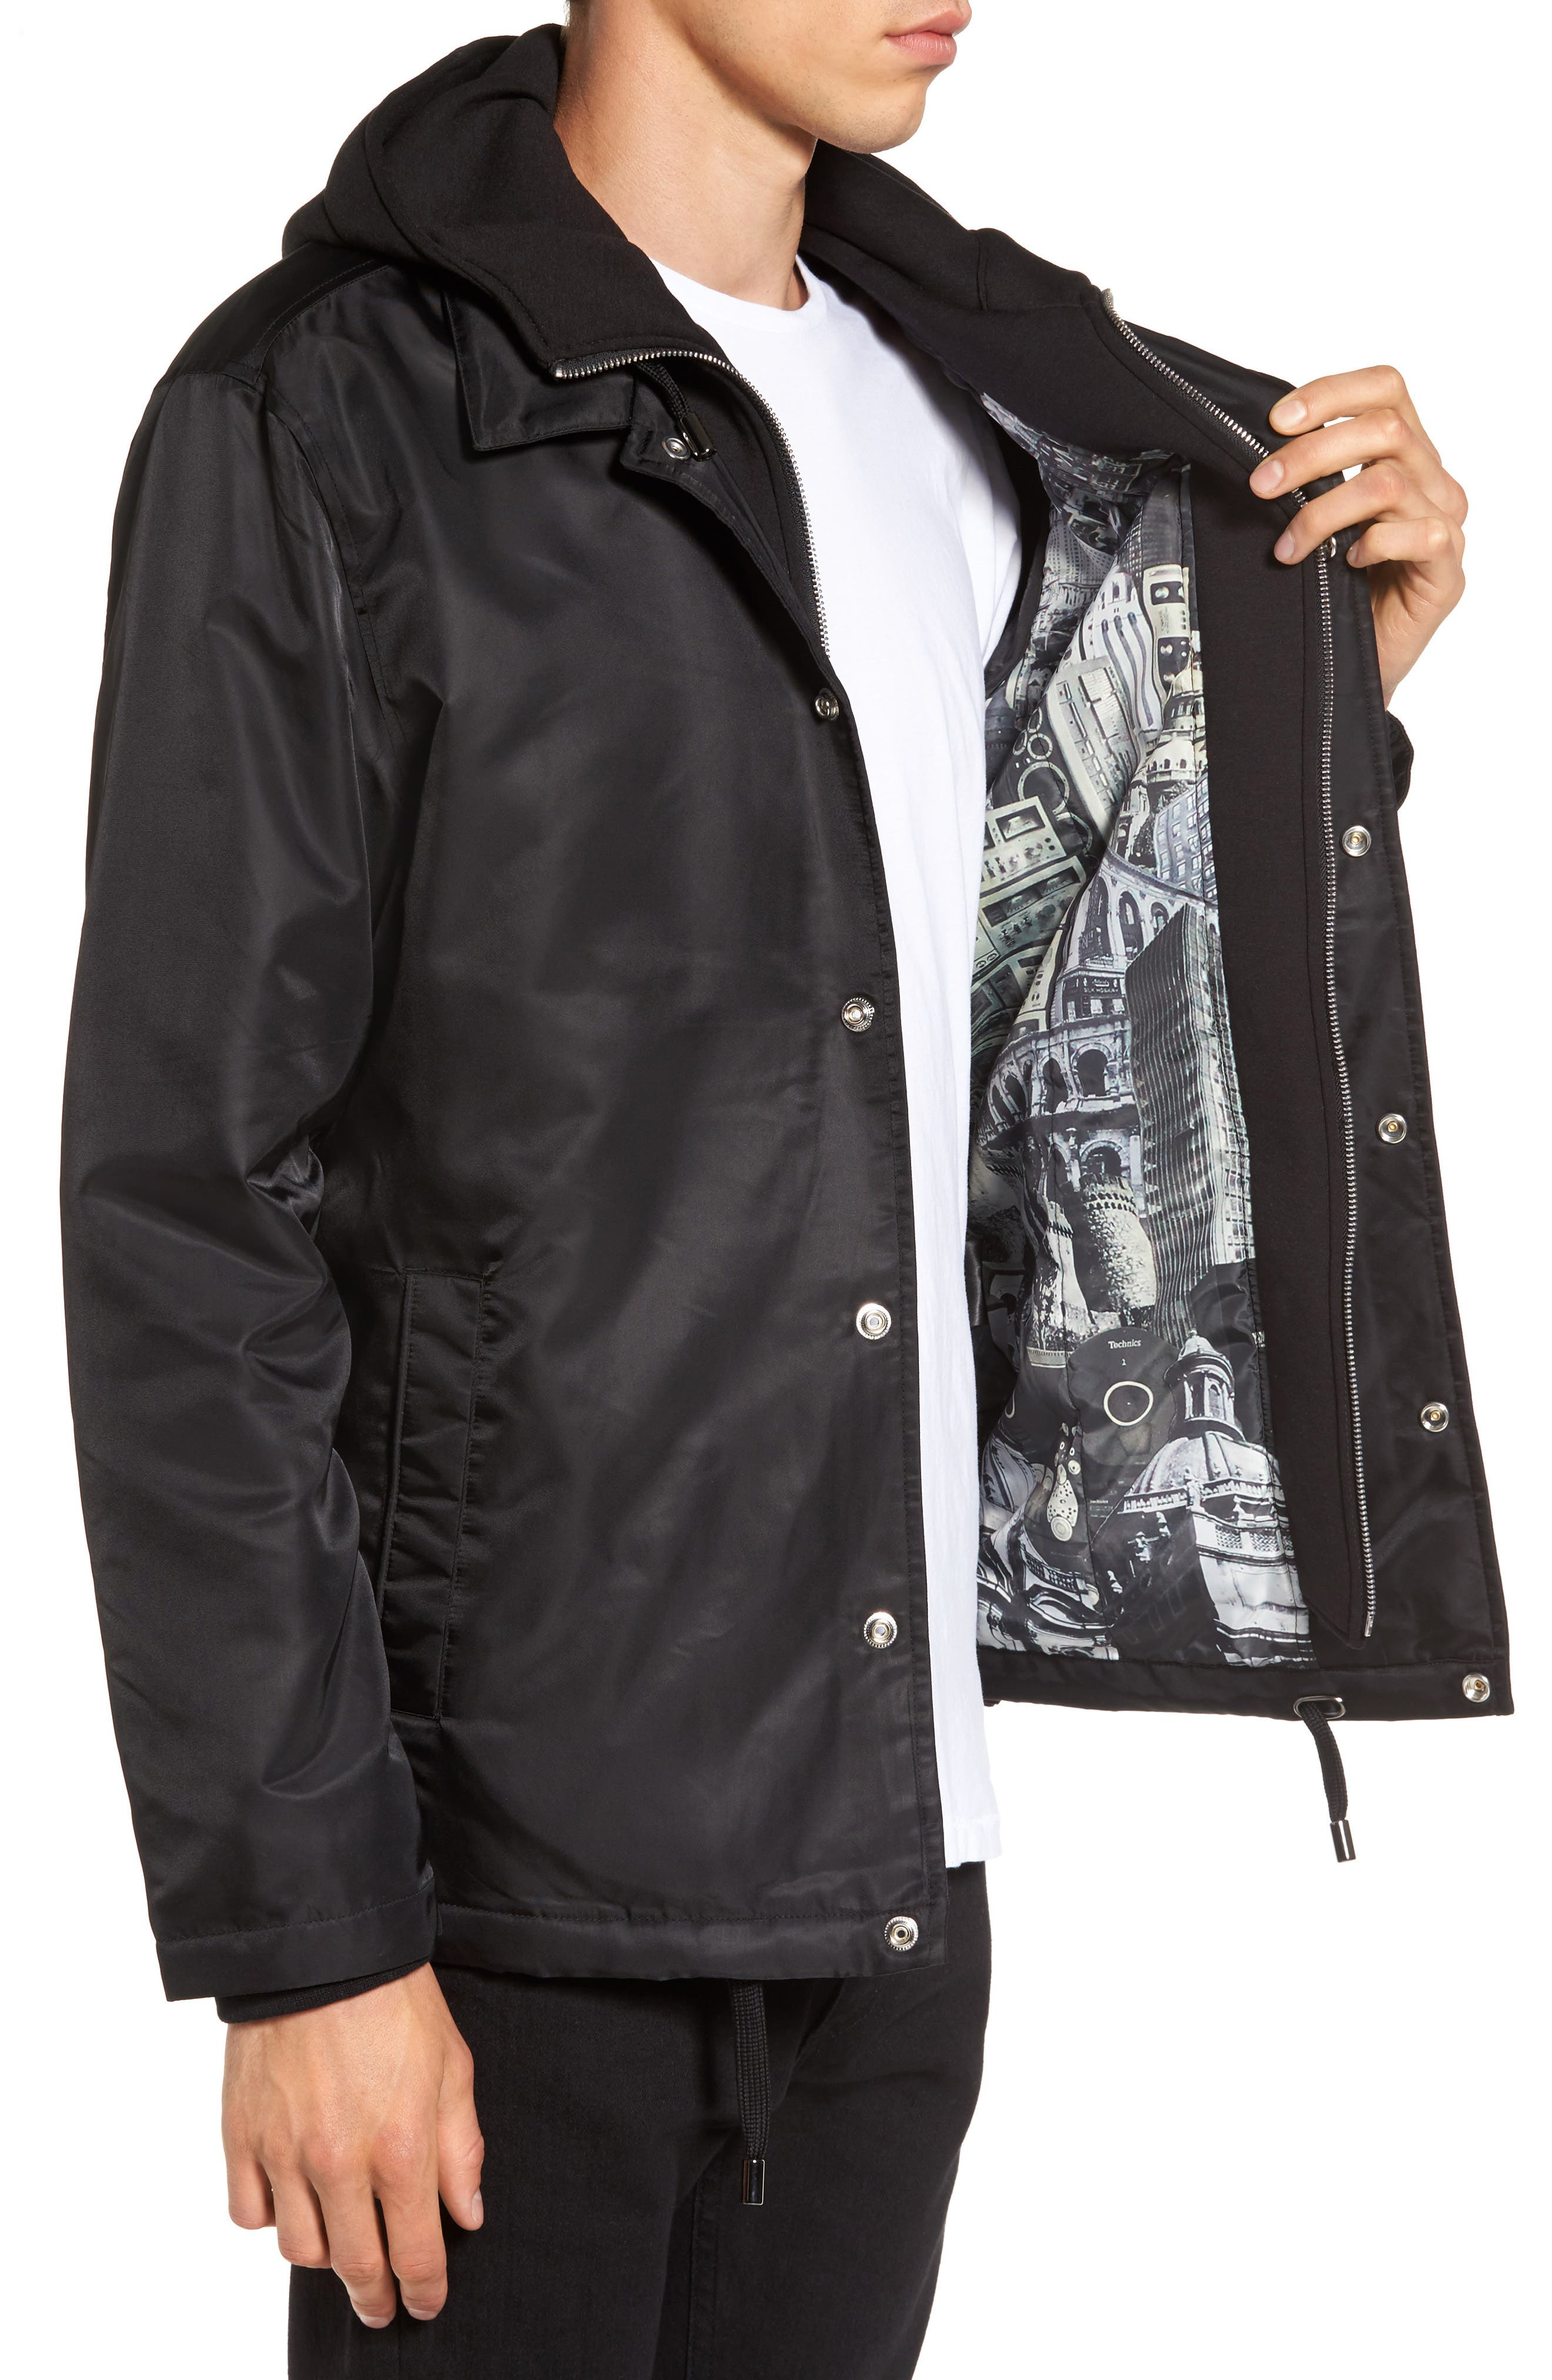 Yorkshire Hooded Coach's Jacket,                             Alternate thumbnail 3, color,                             001